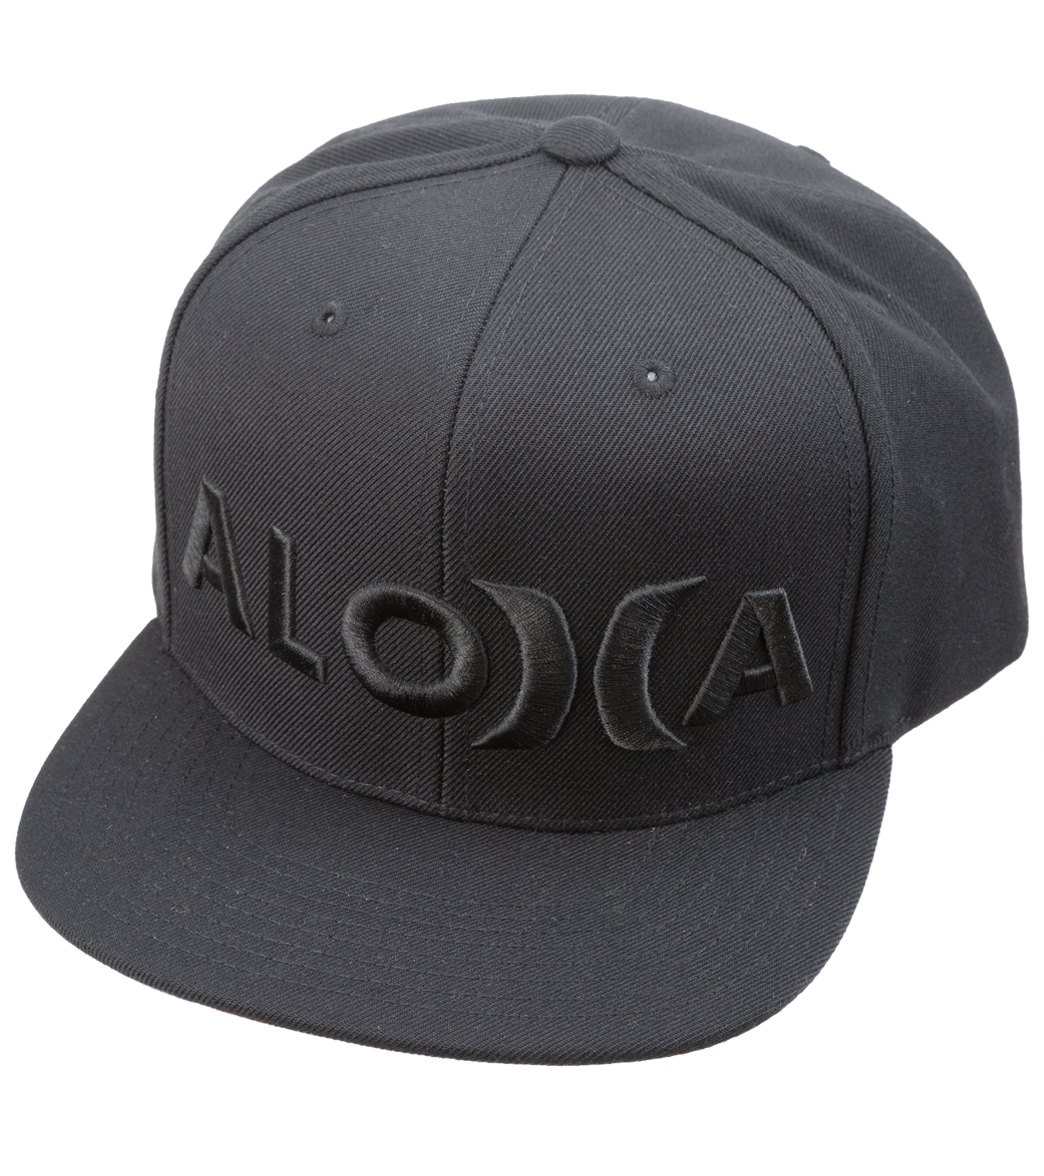 83e176f005 Hurley Men's Aloha Hat at SwimOutlet.com